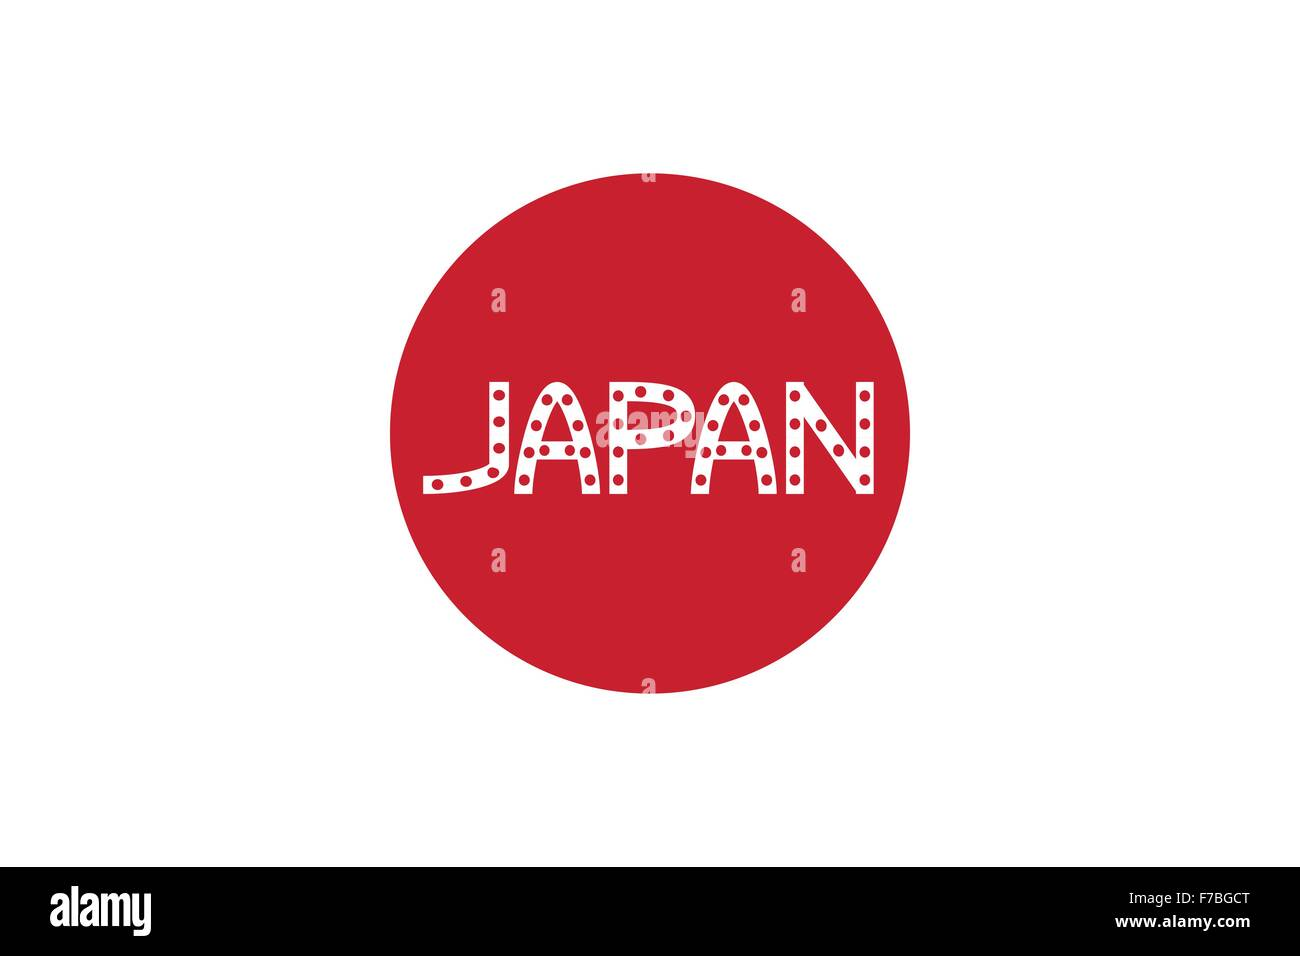 Japanese Flag And Word Japan Stock Vector Art Amp Illustration Vector Image